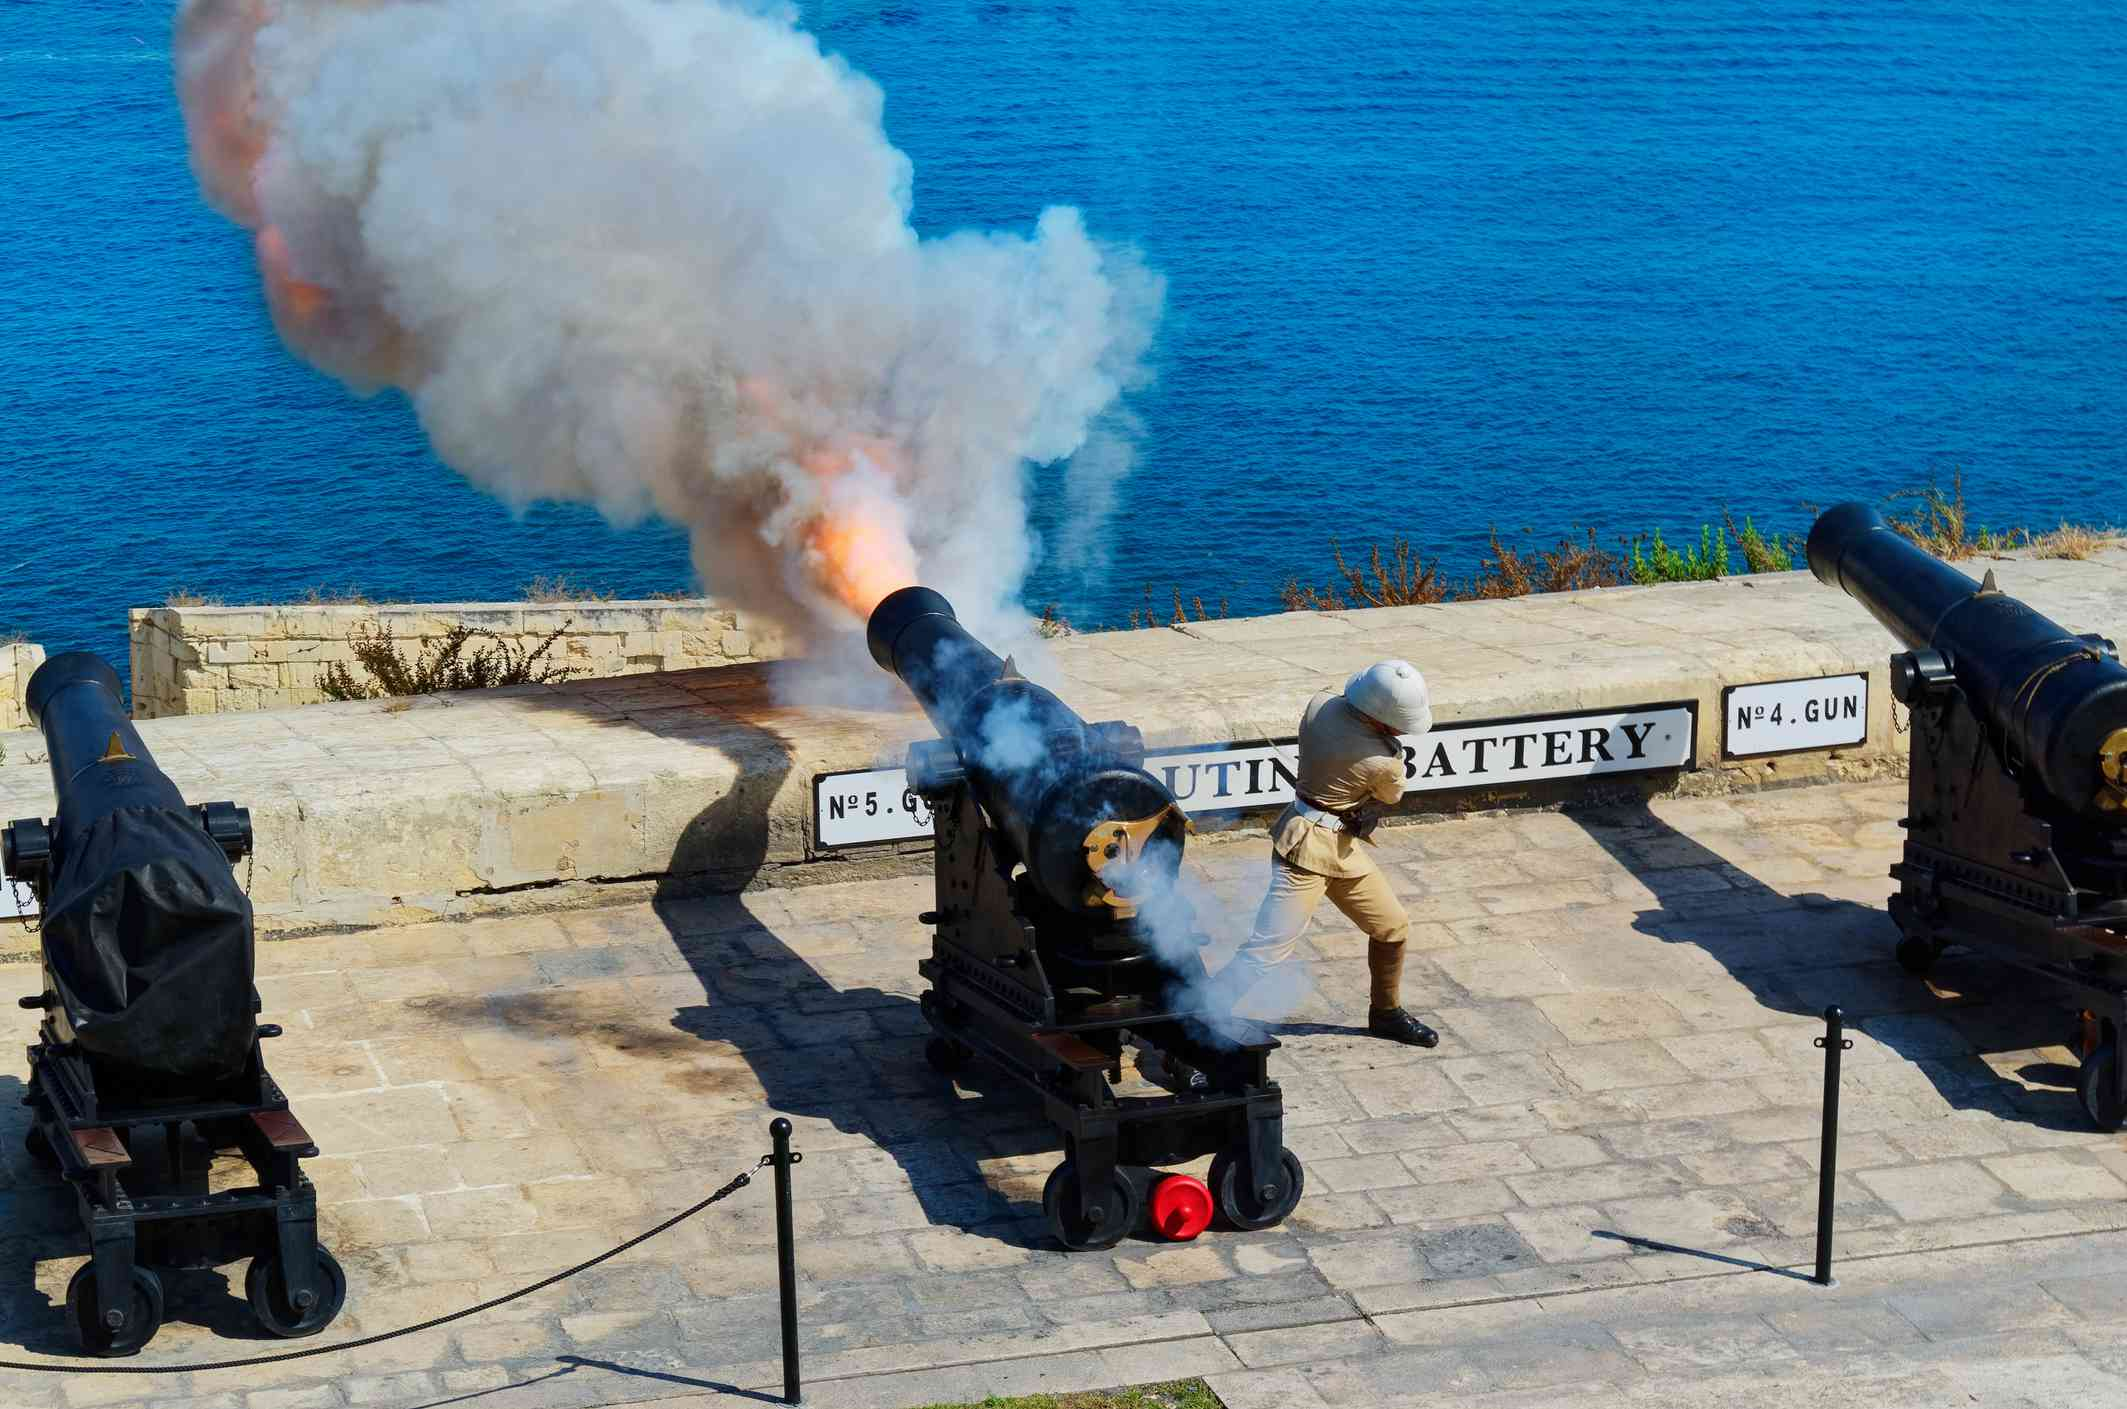 Noon gunfire at the Saluting Battery, part of the Malta at War Museum